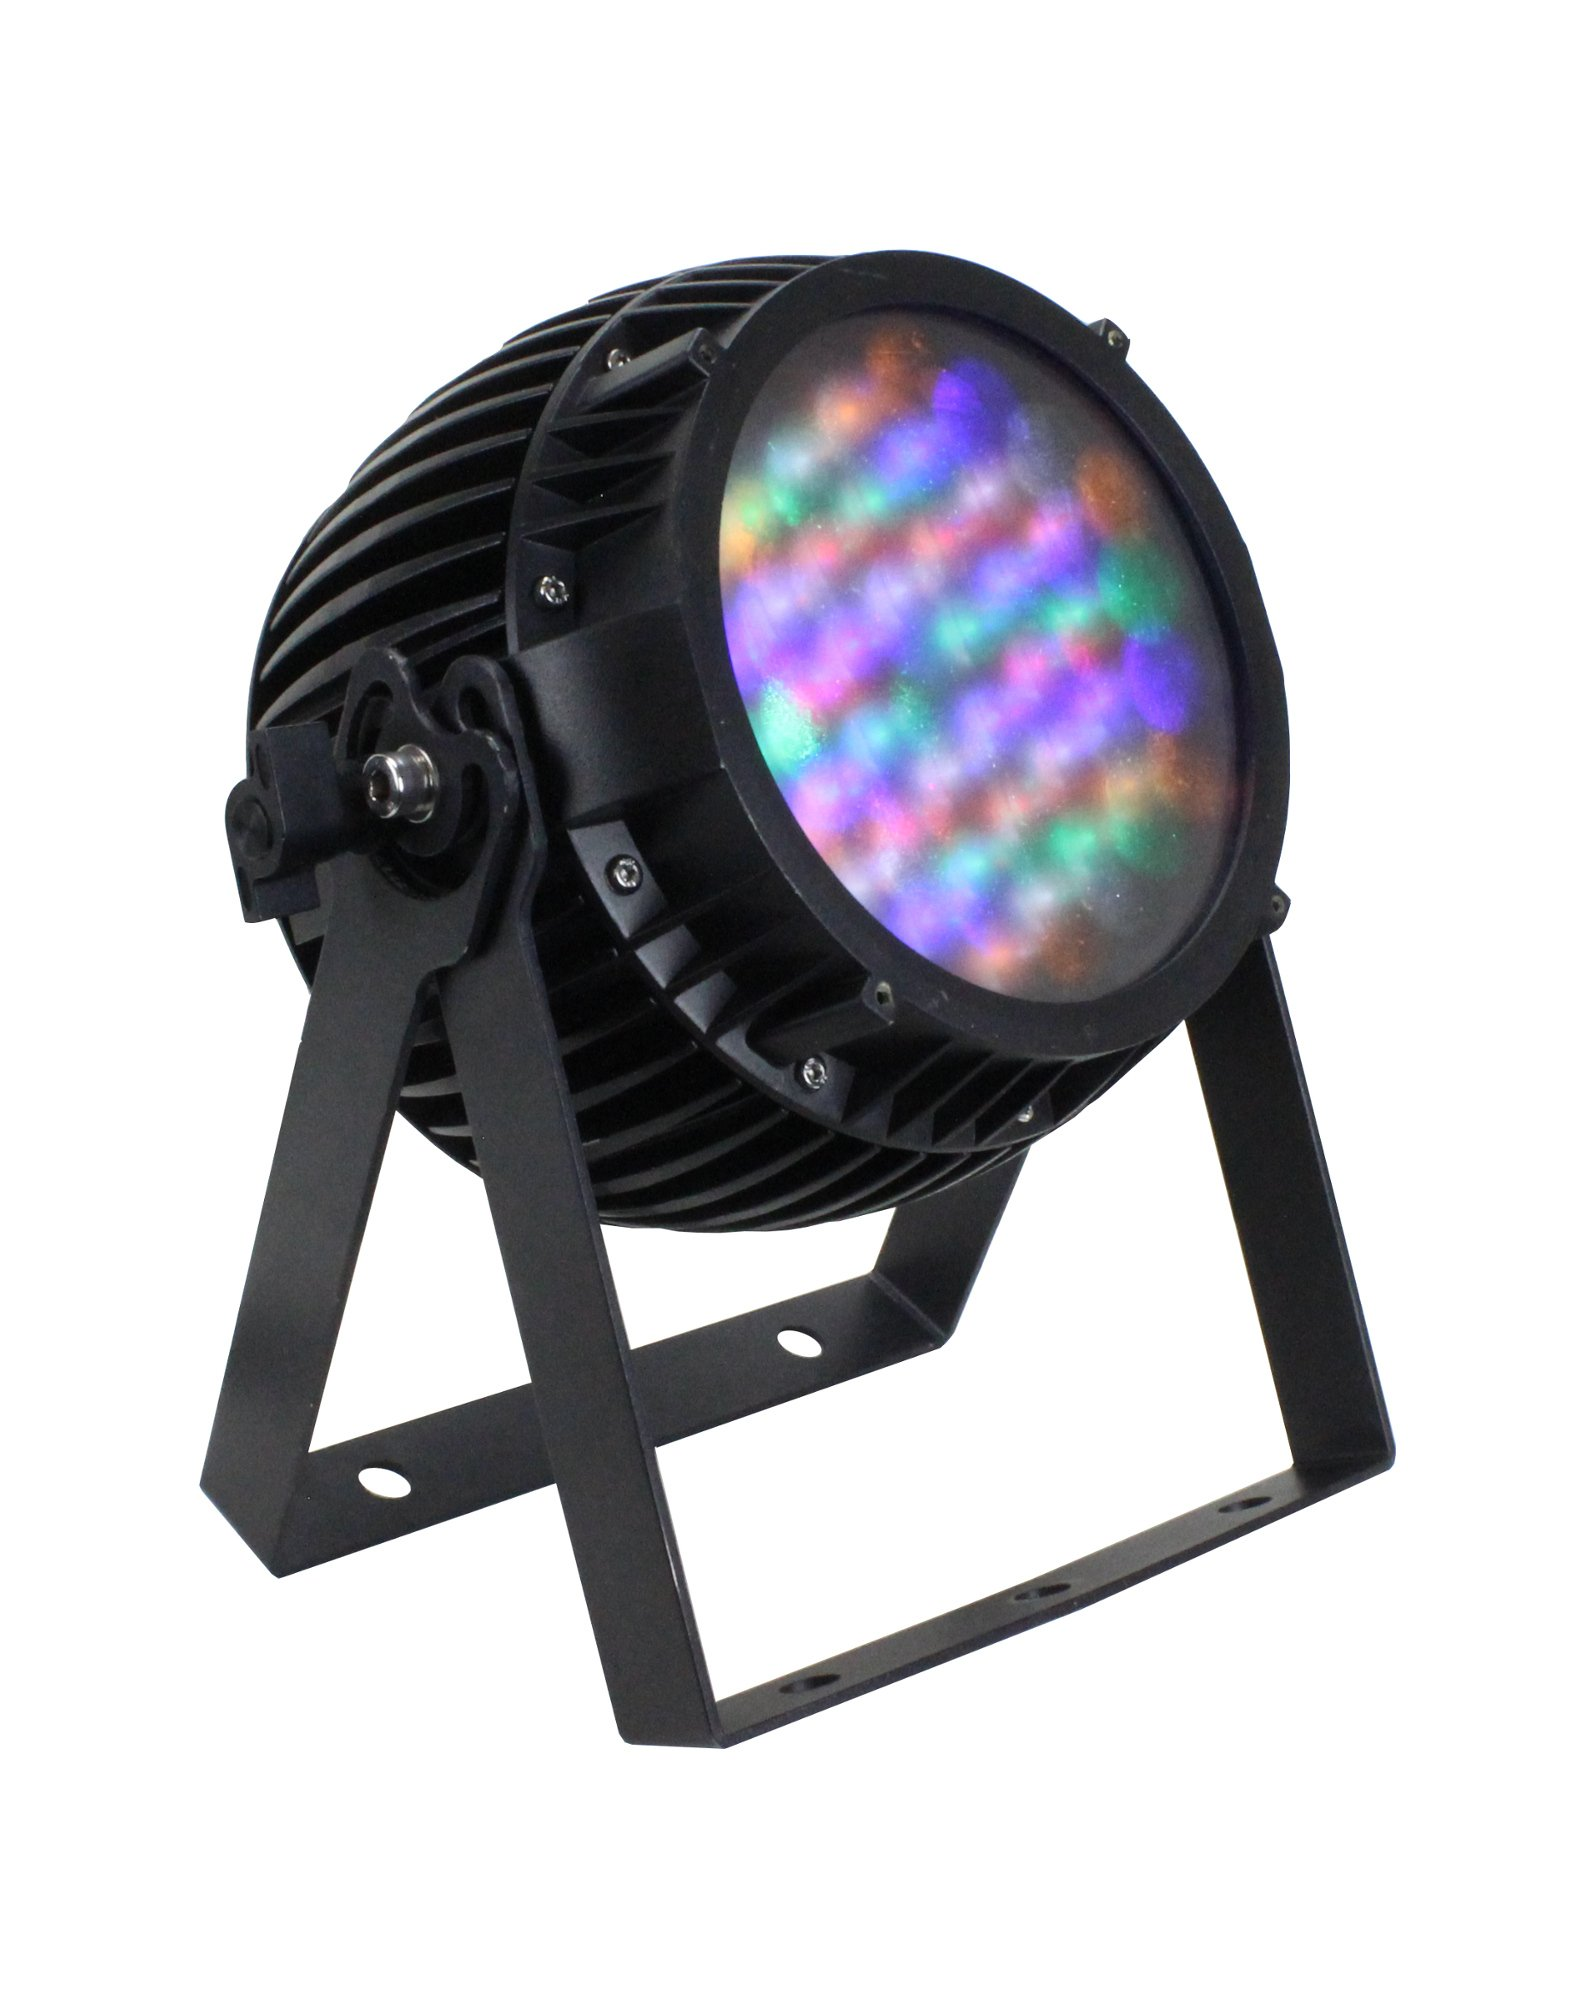 Blizzard Lighting TOURnado Zoom RGBAW RGBAW LED Par Luminaire with Zoom and LED Control Panel, IP65-Rated TOURNADO-ZOOM-RGBAW